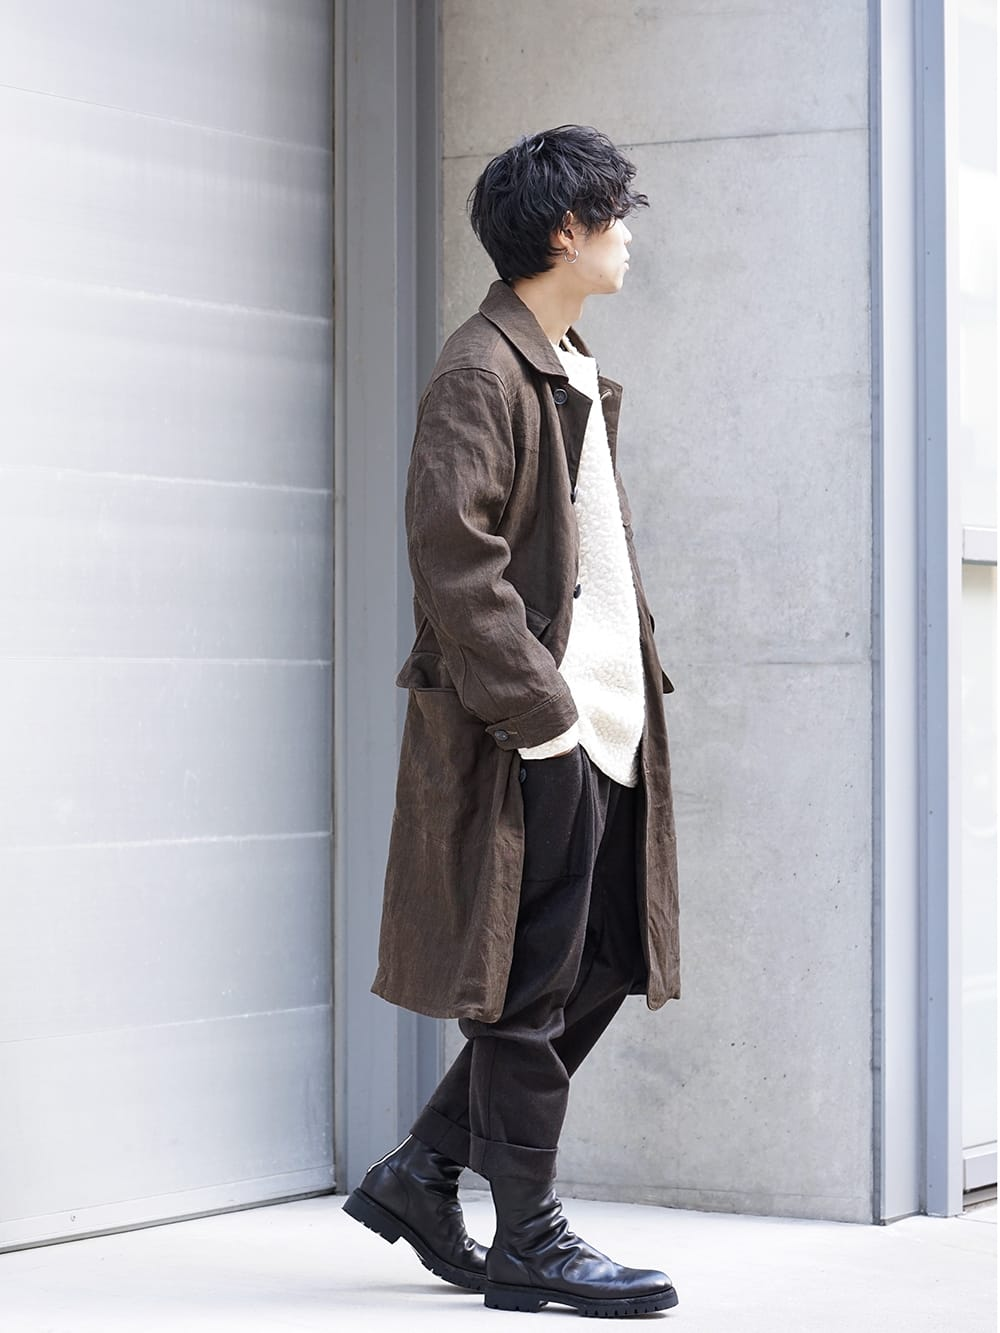 ware × ZIGGYCHEN New Items Styling by ANNASTESIA NAGOYA - 1-002